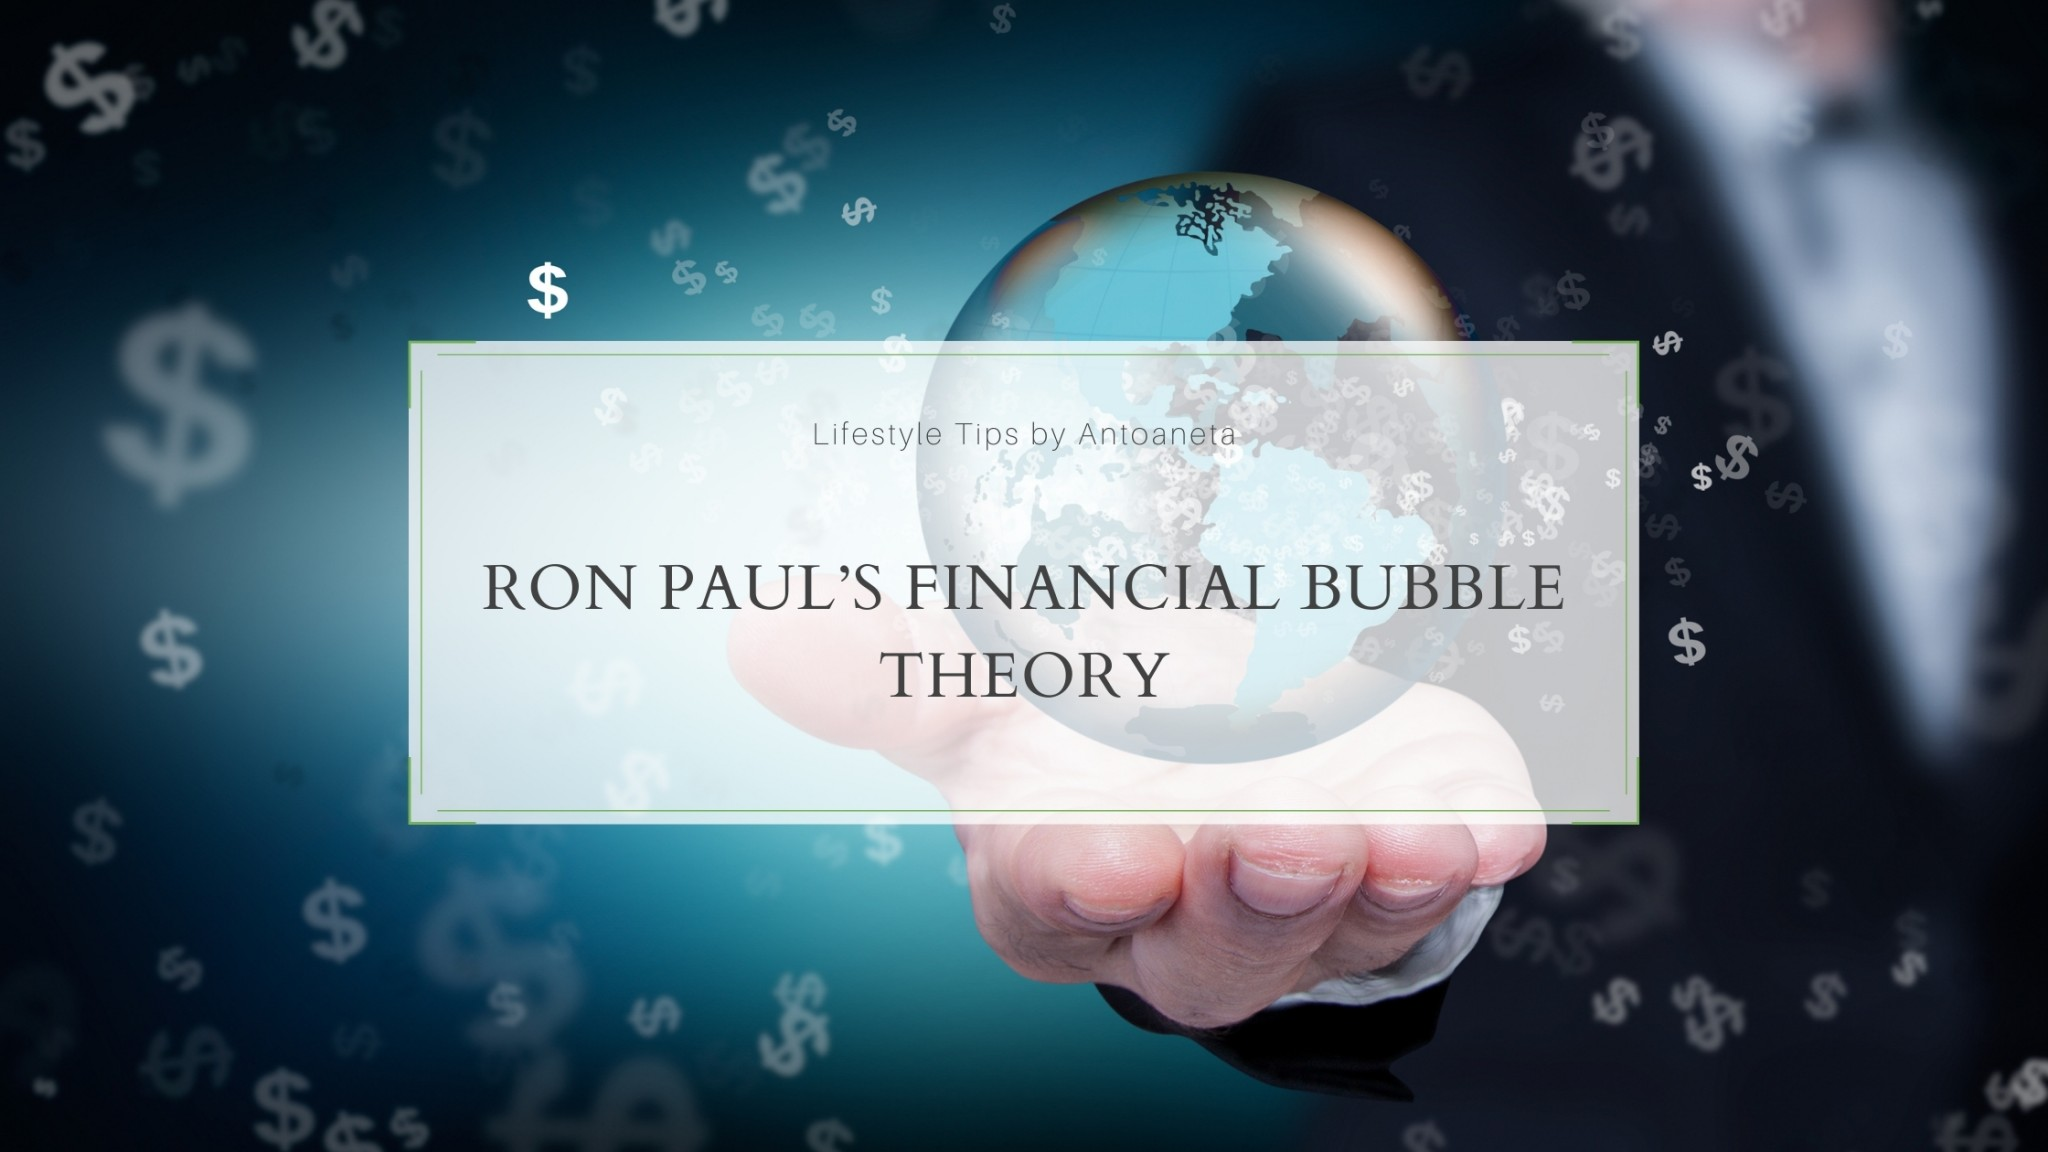 Ron Paul's Financial Bubble Theory